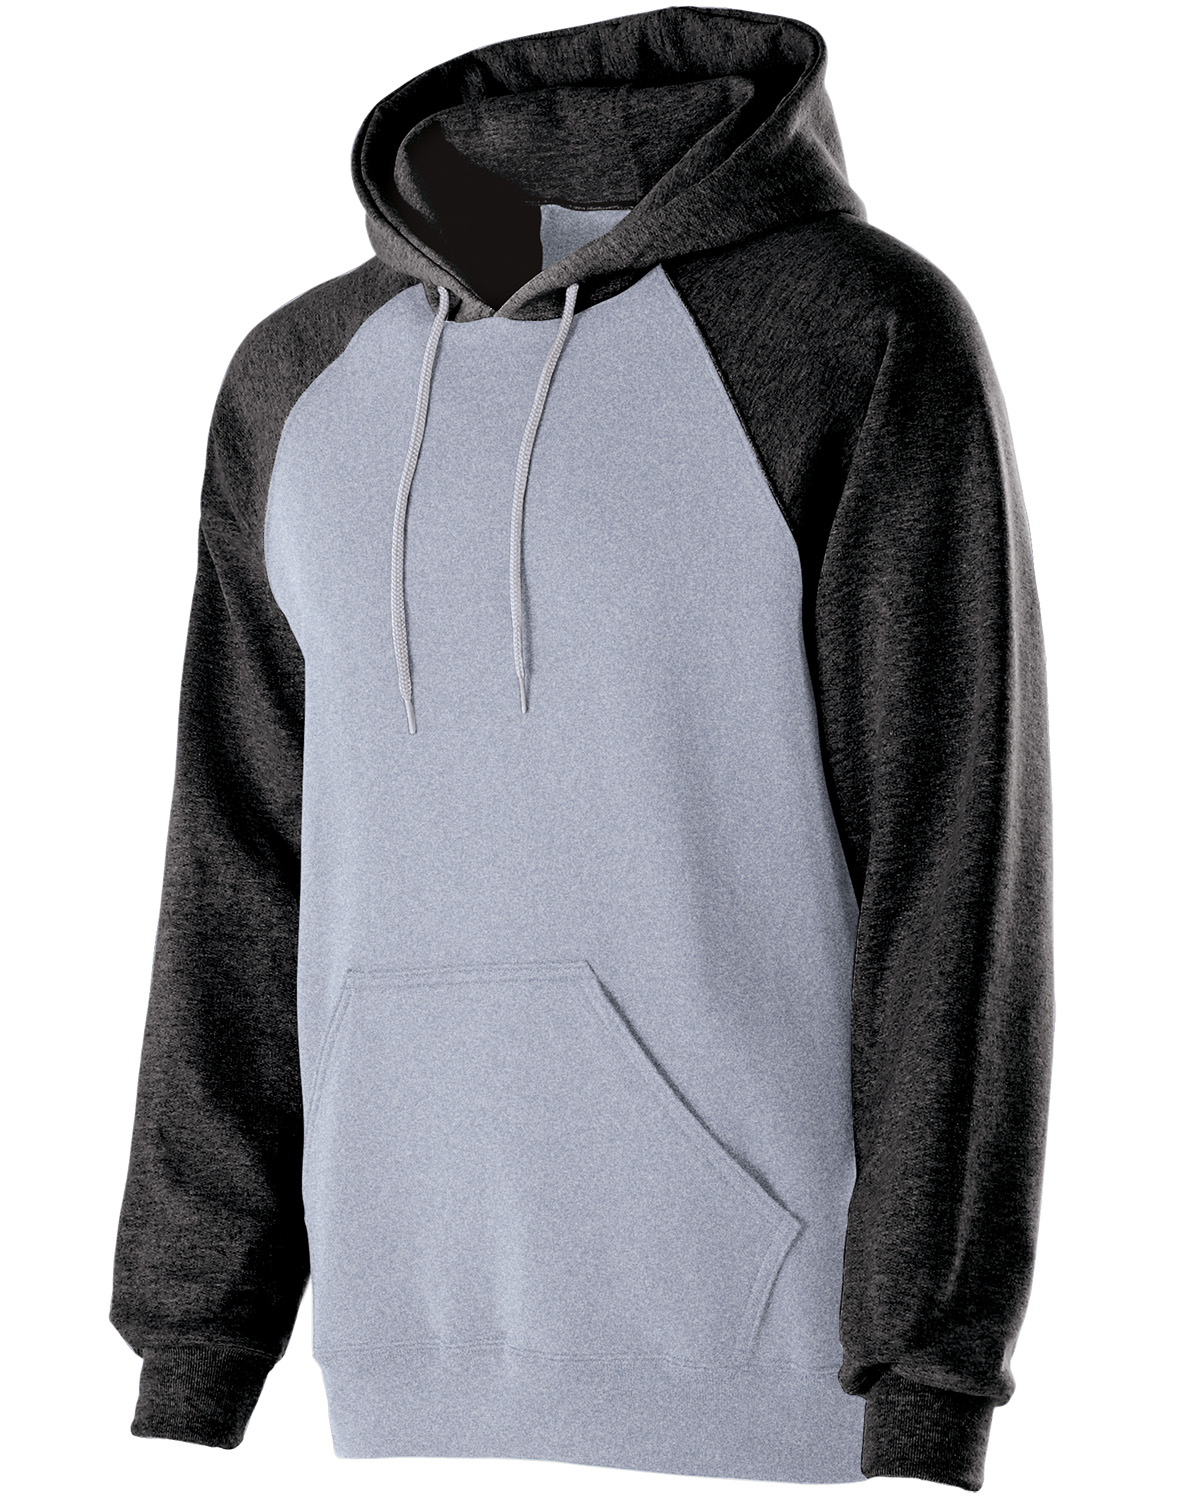 Holloway 229179 - Adult Cotton/Poly Fleece Banner Hoodie